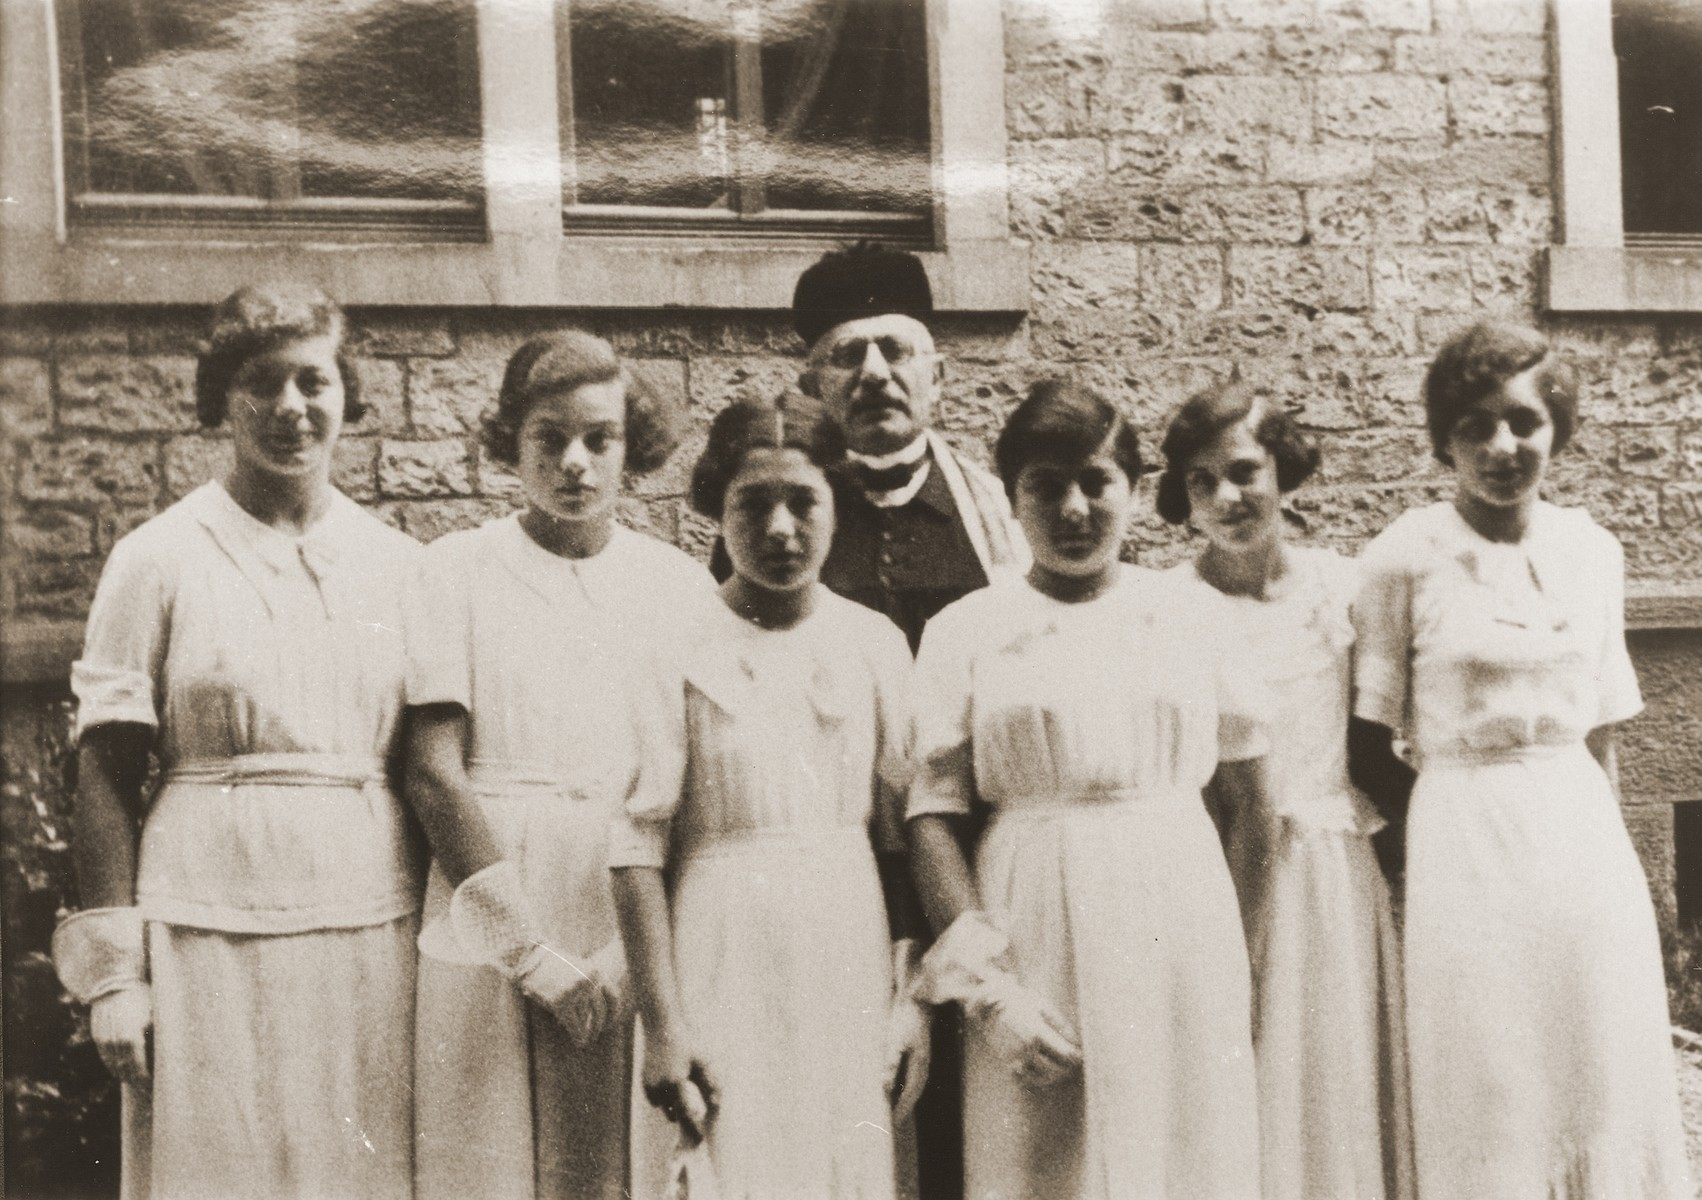 Group portrait of a girls' confirmation class in the courtyard of the liberal Zerrennerstrasse synagogue in Pforzheim.    Pictured from left to right are: Susanne Wolf, Herta Levy, Lore Kahn, Edith Kahn, Ruth Lieben, and Ellen Roos. Cantor David Sommer stands behind them.  All the girls emigrated to the United States by 1940.  Cantor Sommer emigrated to India in 1939.